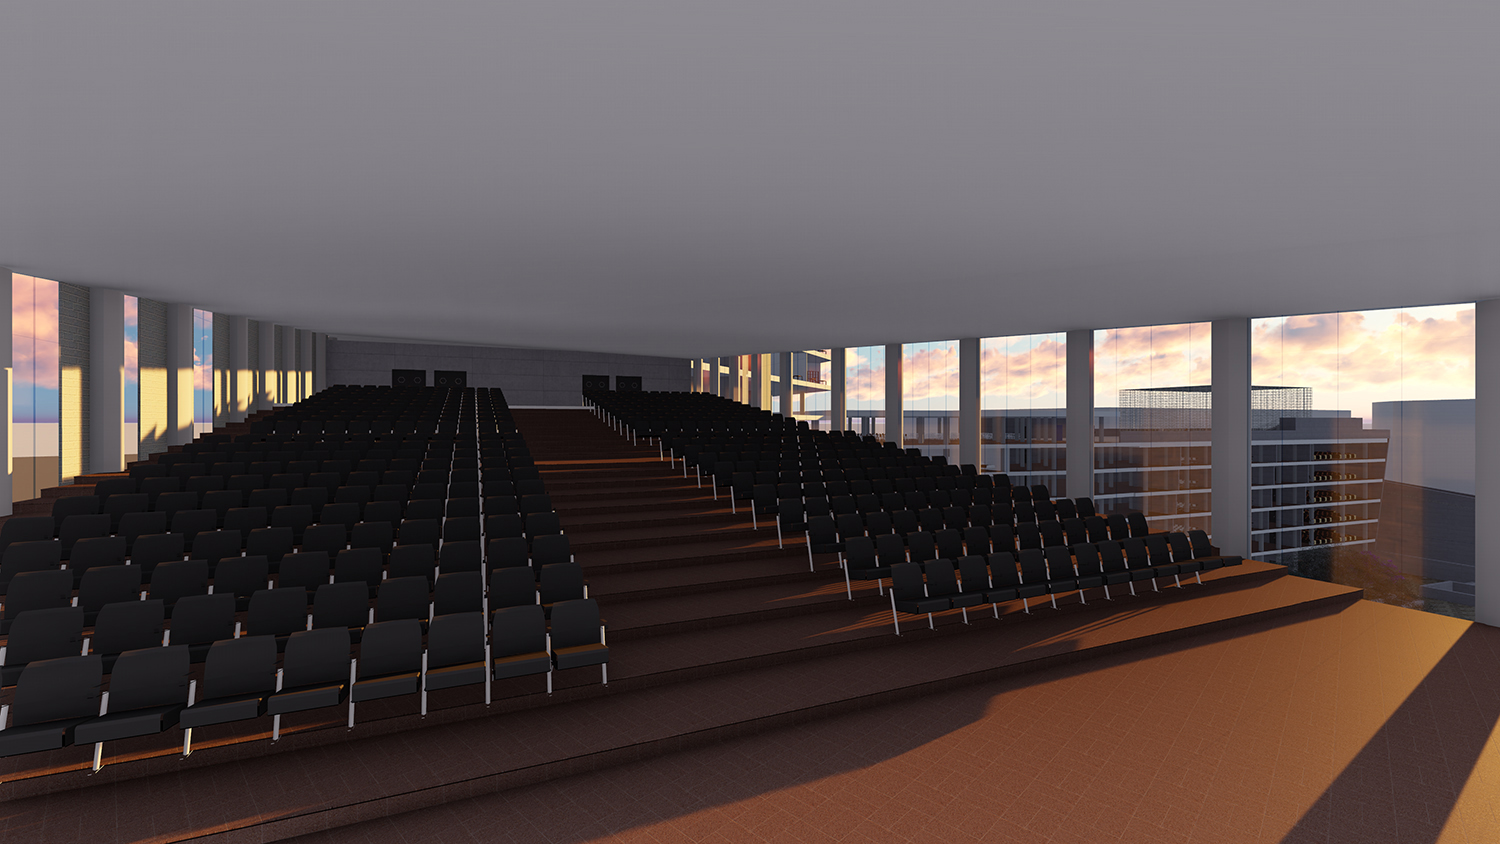 Perspective view of the auditorium